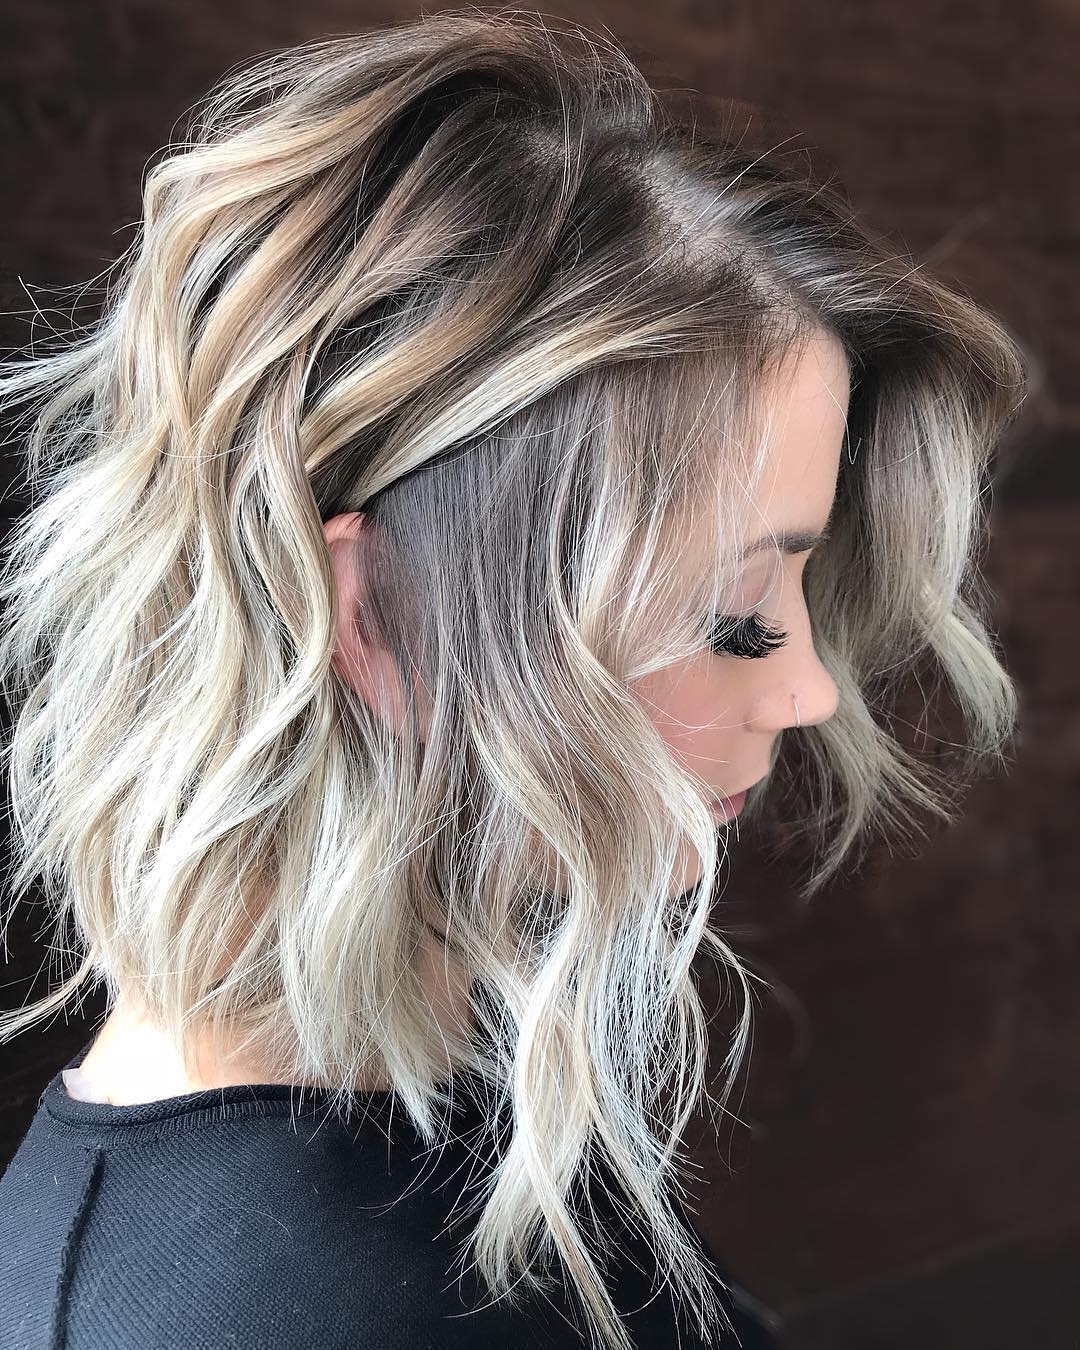 2018 Ombre Balayage Hairstyles For Chic Mid Length Hair ! 2